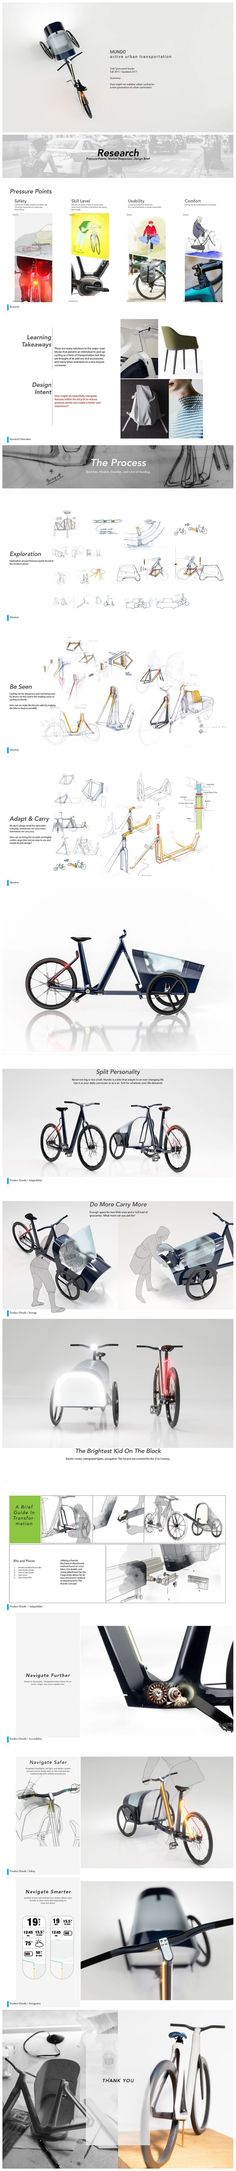 Next Generation Cargo Bike That makes riding, easier, versatile and practical